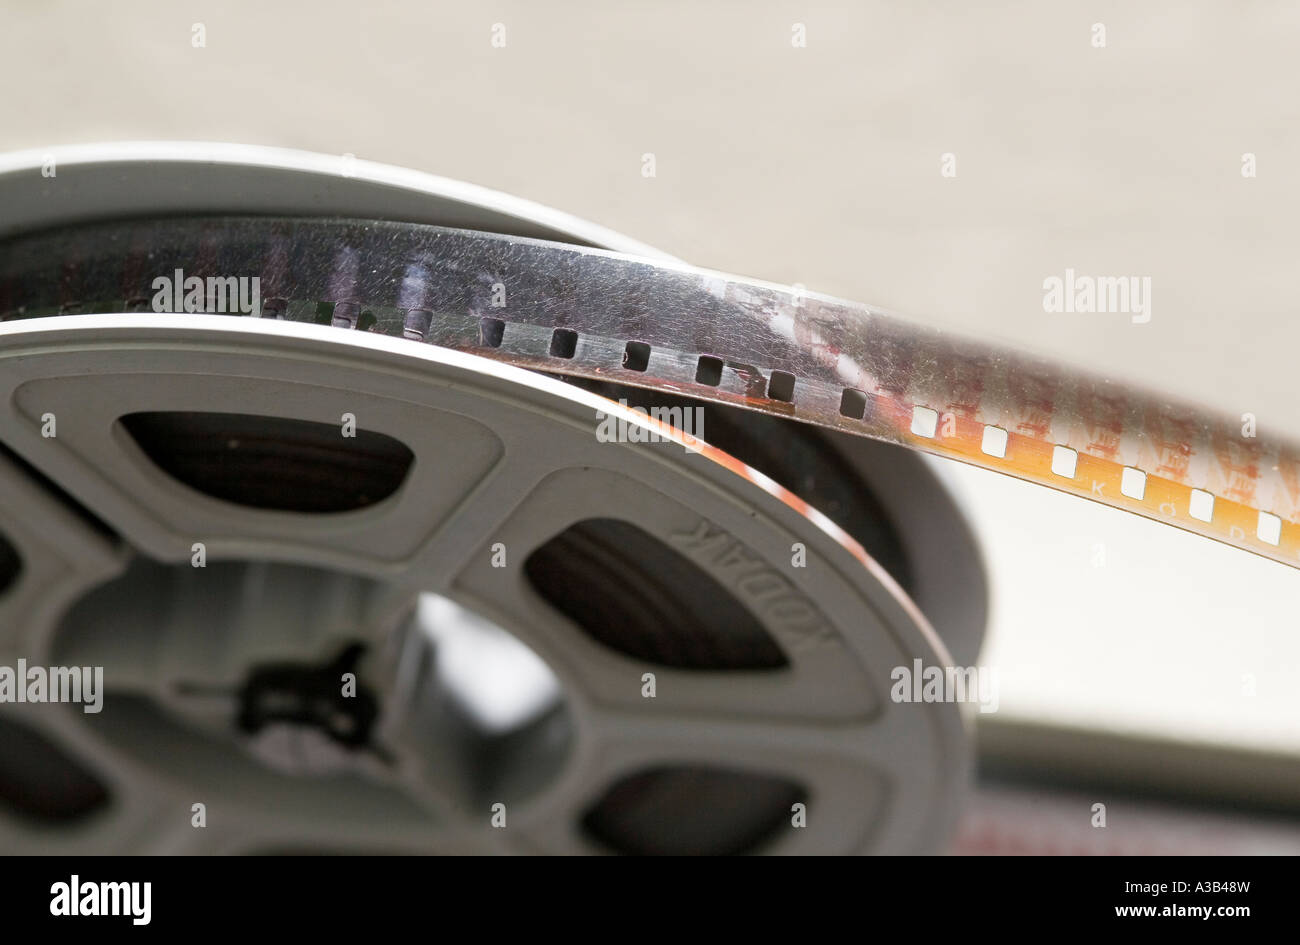 Amateur 8mm cine film on projector reel showing damage from age and fungal growth - Stock Image